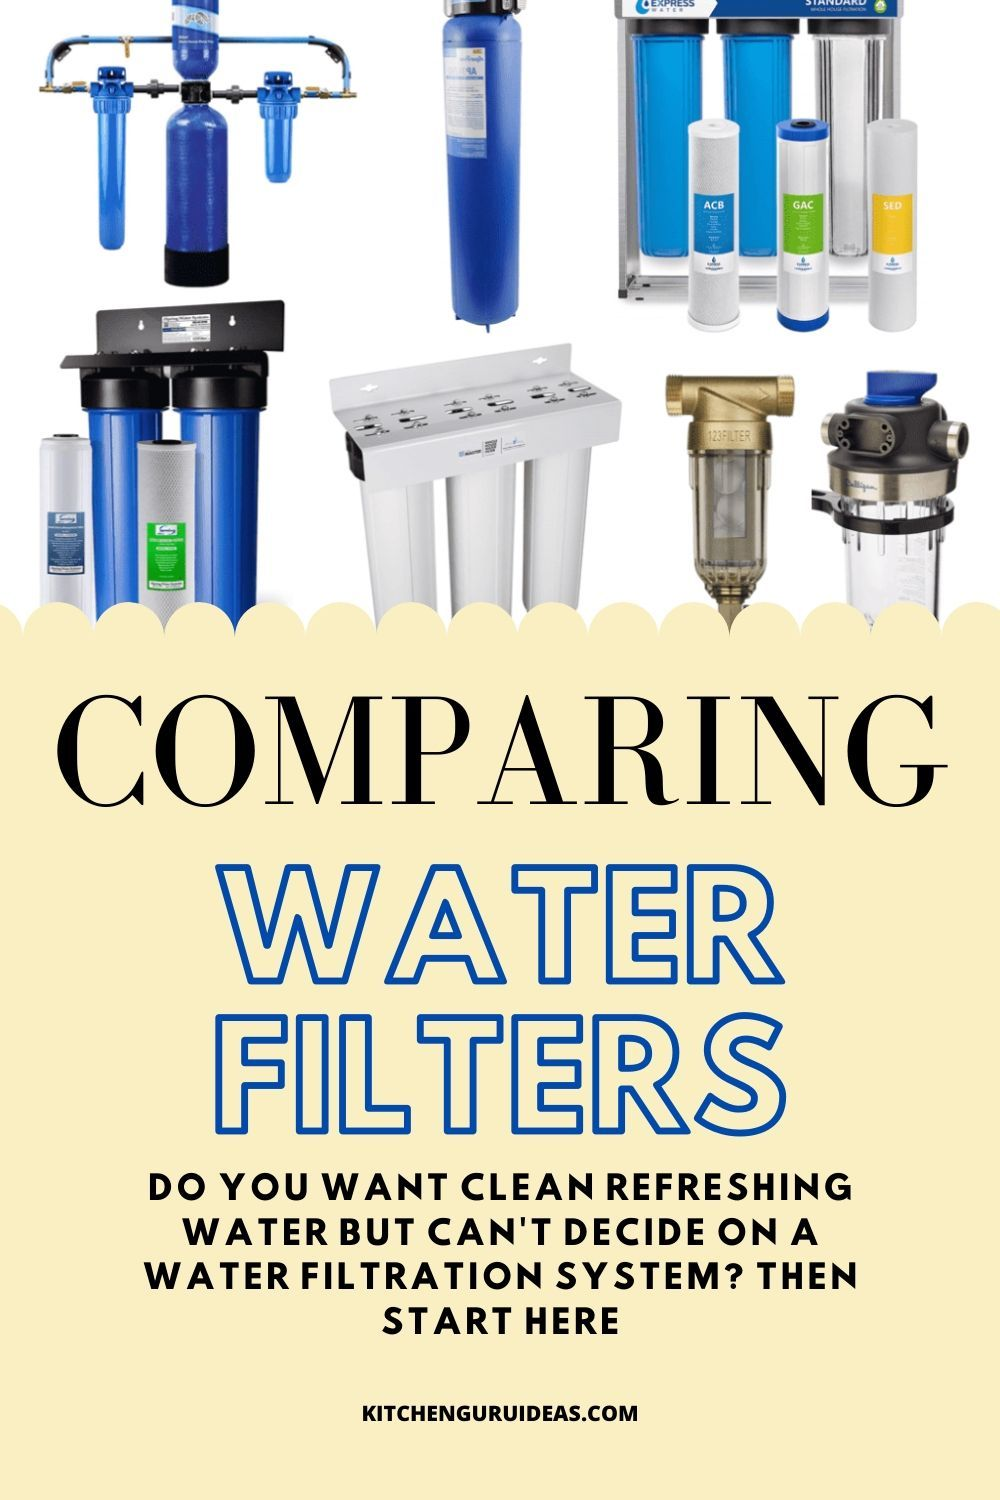 Comparing Water Filters In 2020 Countertop Water Filter Under Sink Water Filter Best Water Filter